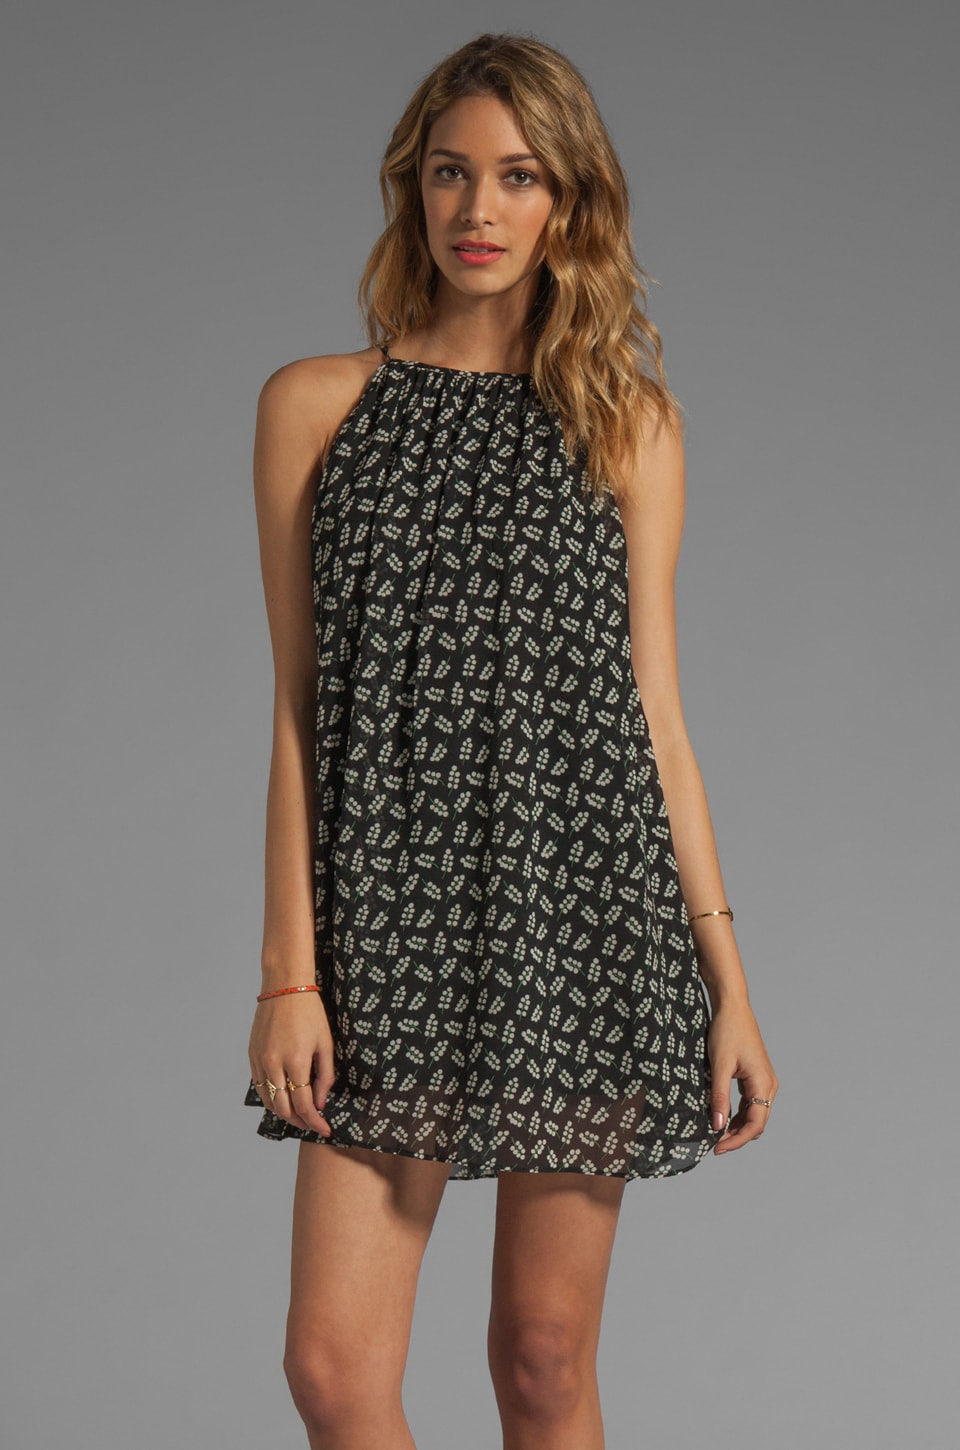 JARLO Taylor Tank Dress in Black